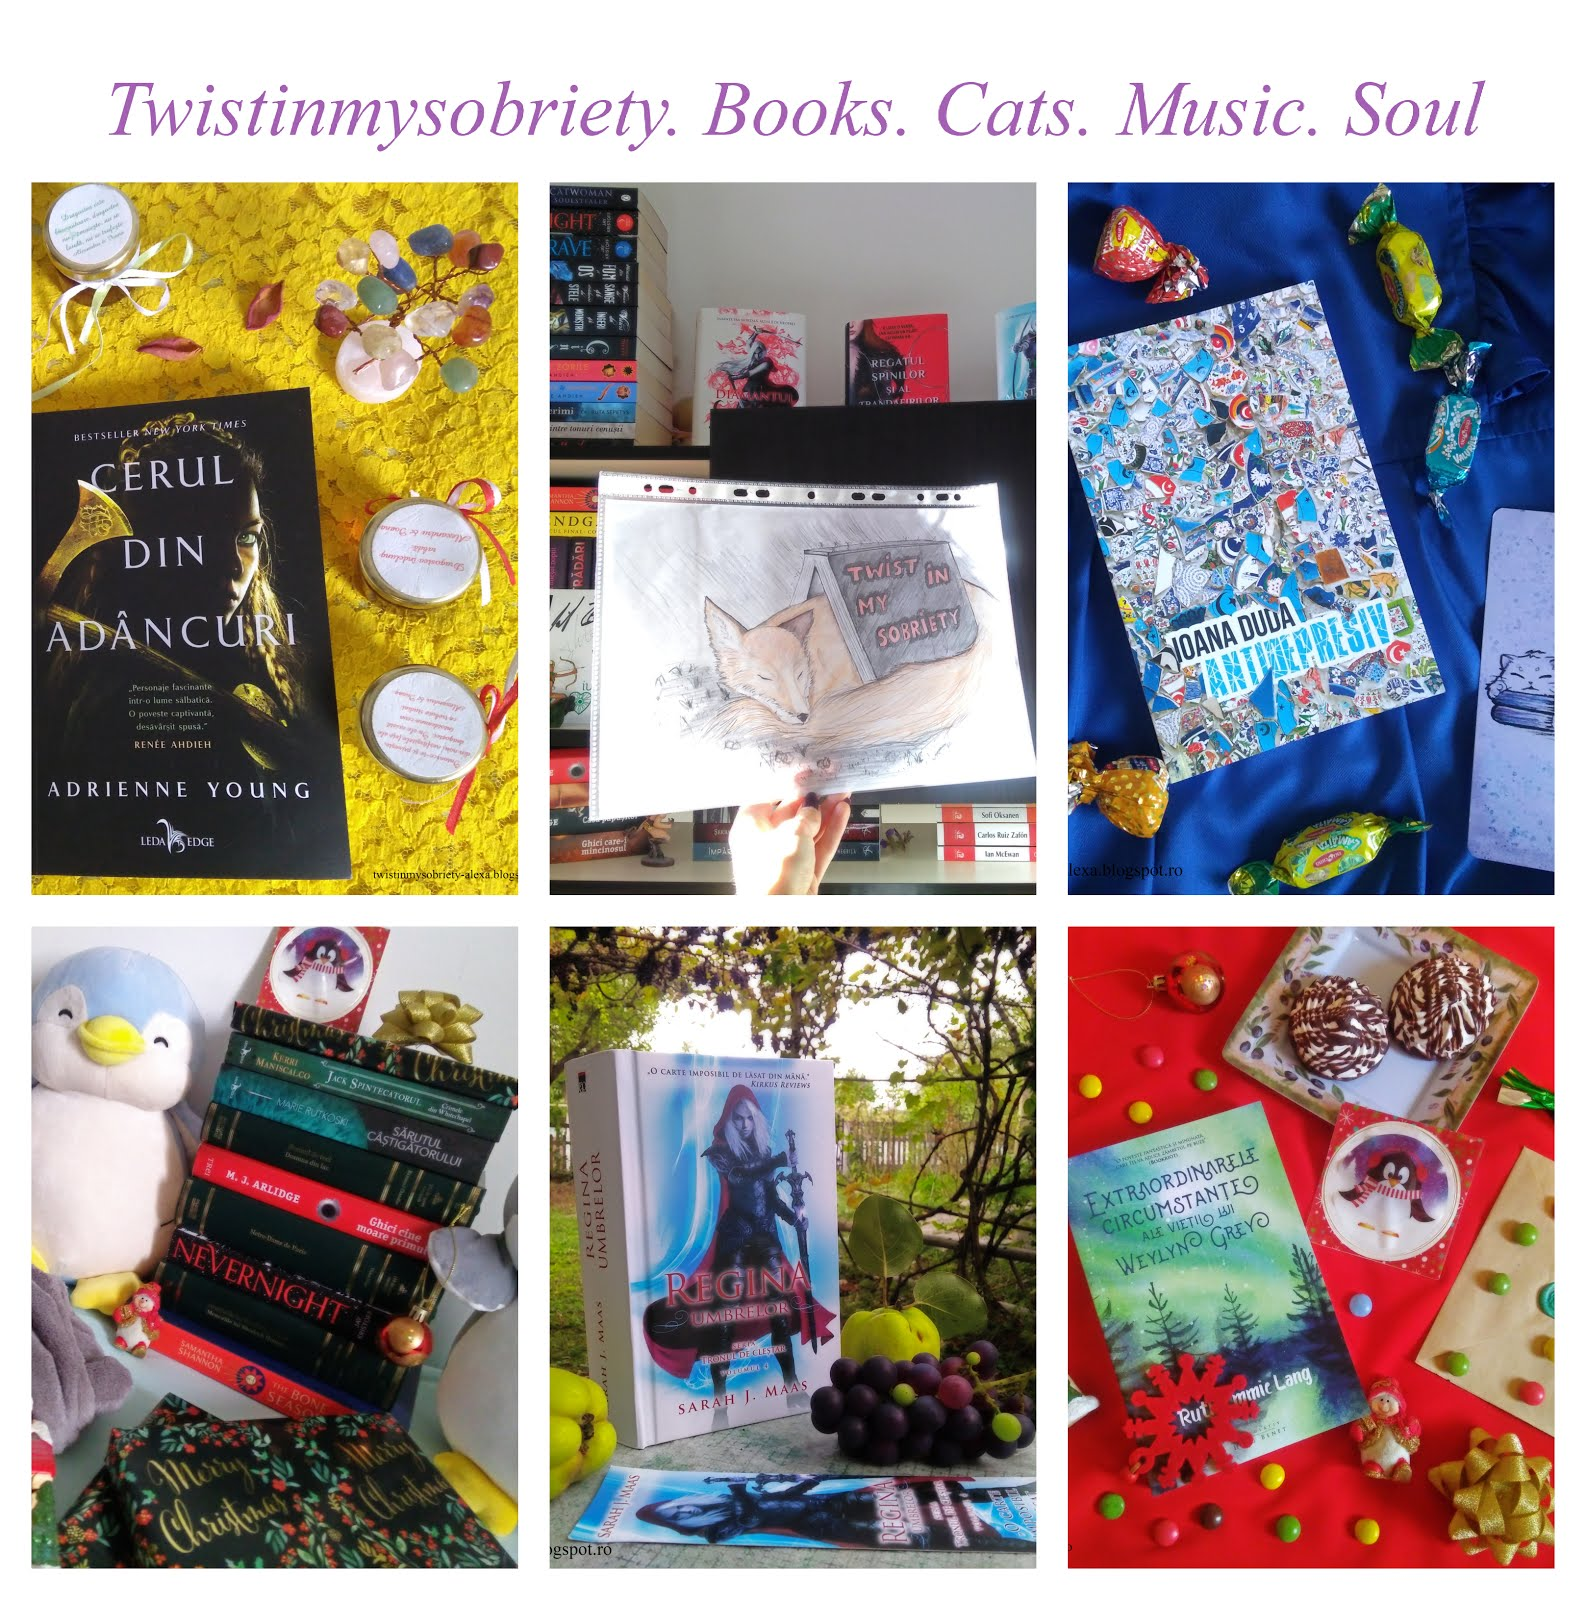 Twistinmysobriety. Books. Cats. Music. Soul.